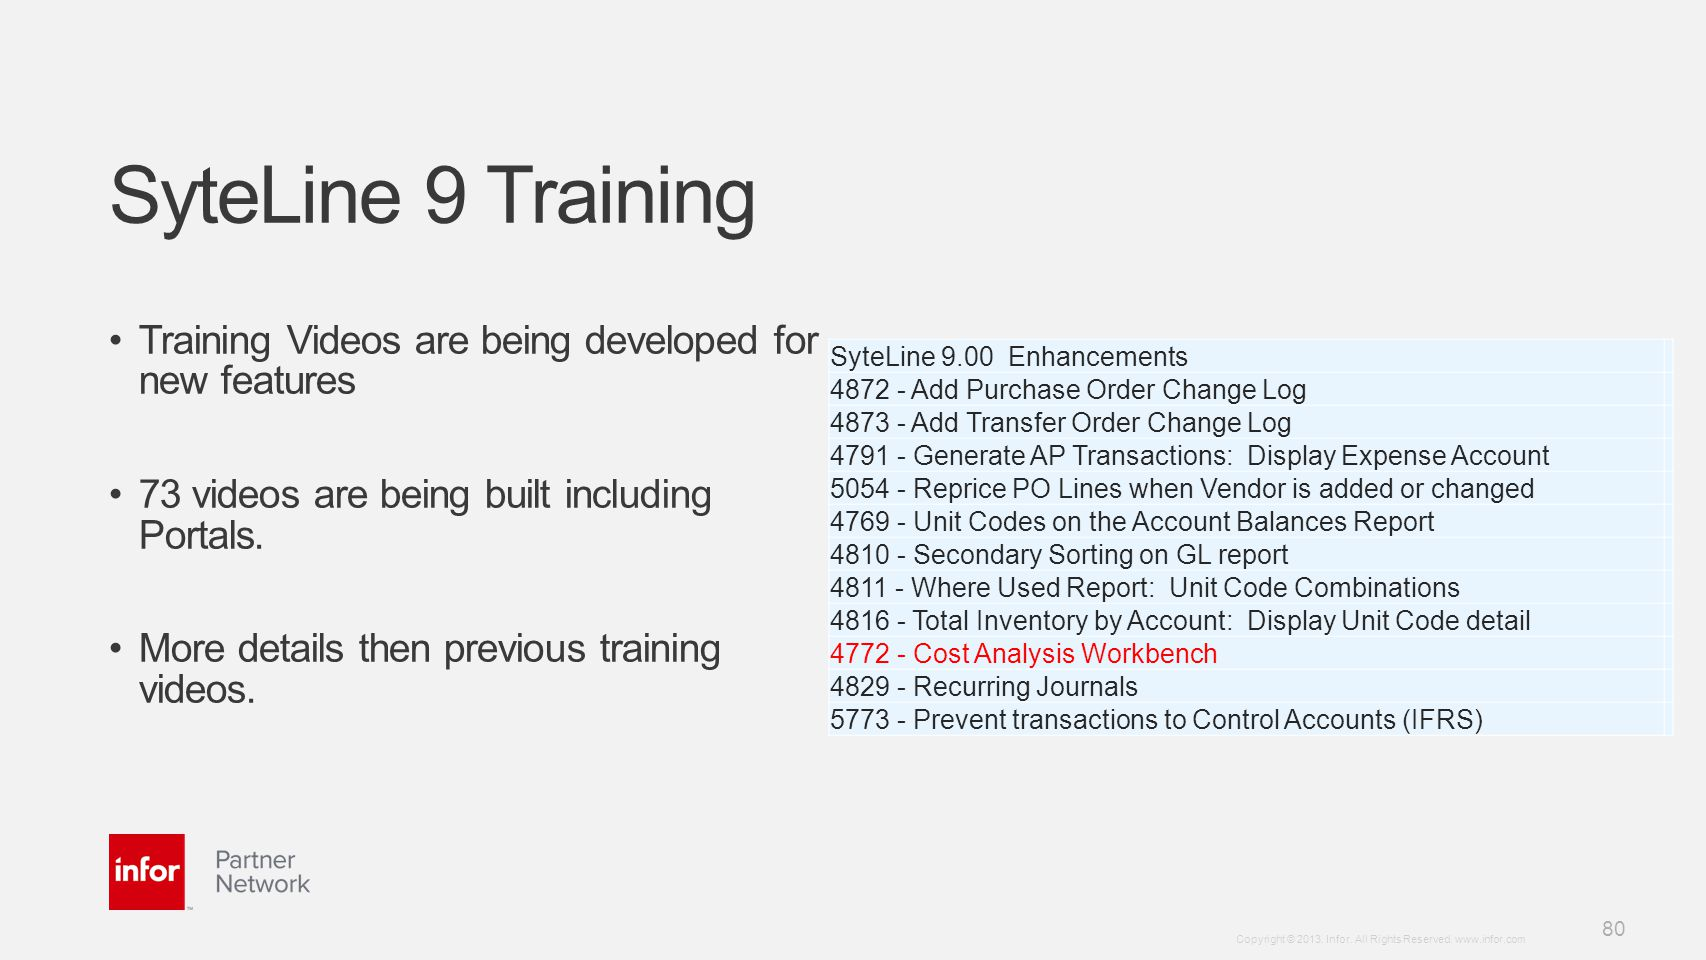 SyteLine 9 Training Training Videos are being developed for new features. 73 videos are being built including Portals.